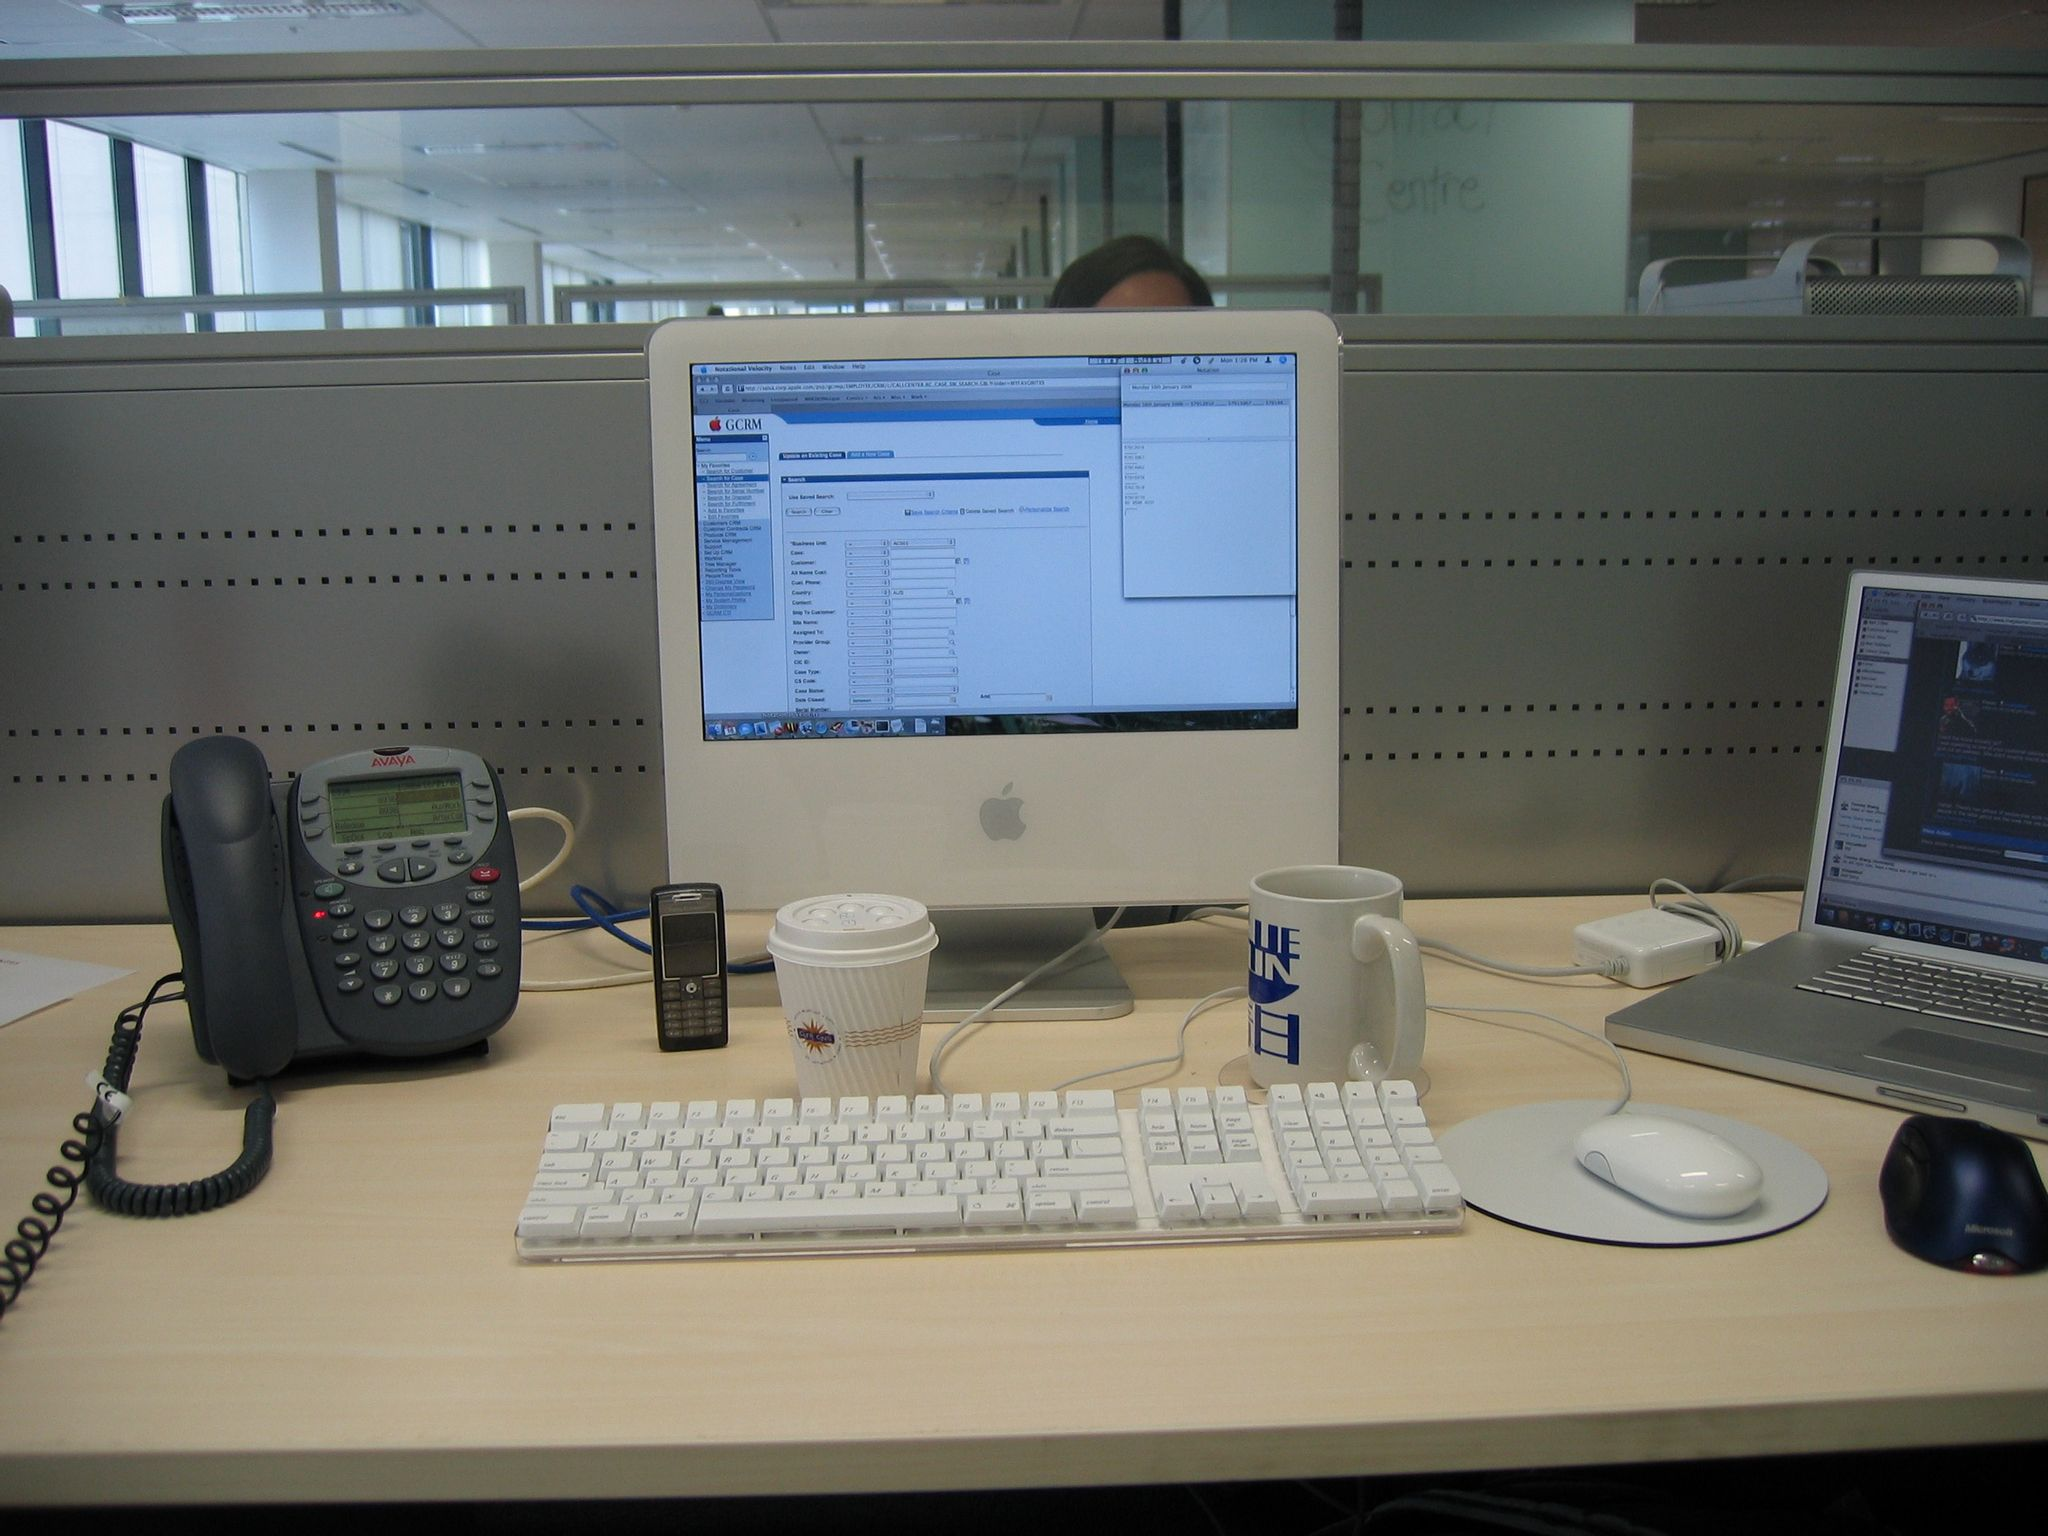 "A photo of my work desk. The desk itself is a light-coloured wood veneer surface, with a grey metal panel behind it. An iMac G5 is sitting the middle, with a 17"" PowerBook G4 to the right of it, and a grey call centre phone to the left."